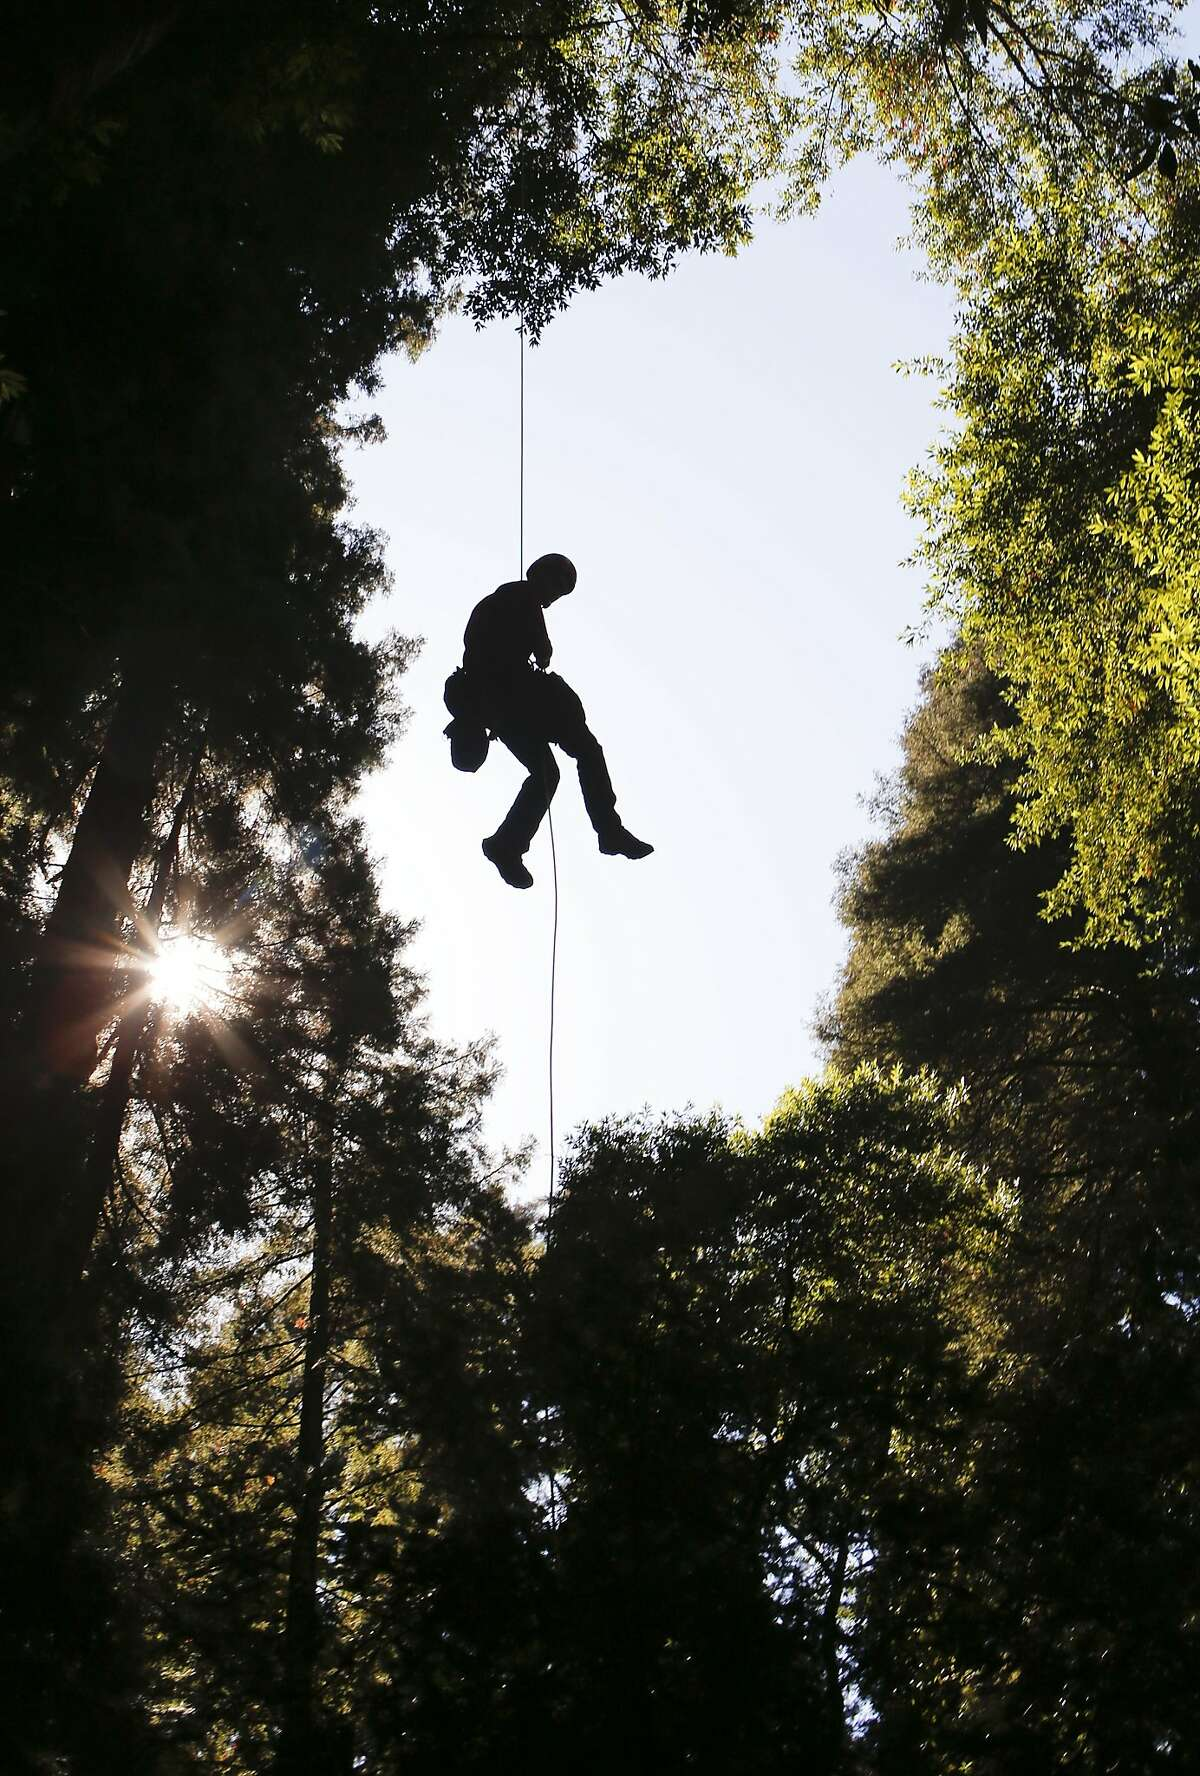 UC Berkeley graduate student Cameron Williams slowly returns from the tree canopy with samples at Henry Cowell Redwoods State Park in Felton , Calif., on Wednesday Oct. 1, 2014. A study by UC Berkeley researchers and San Francisco-based Save the Redwoods League is looking at whether or not the drought is hurting redwood, douglas fir and bay trees.